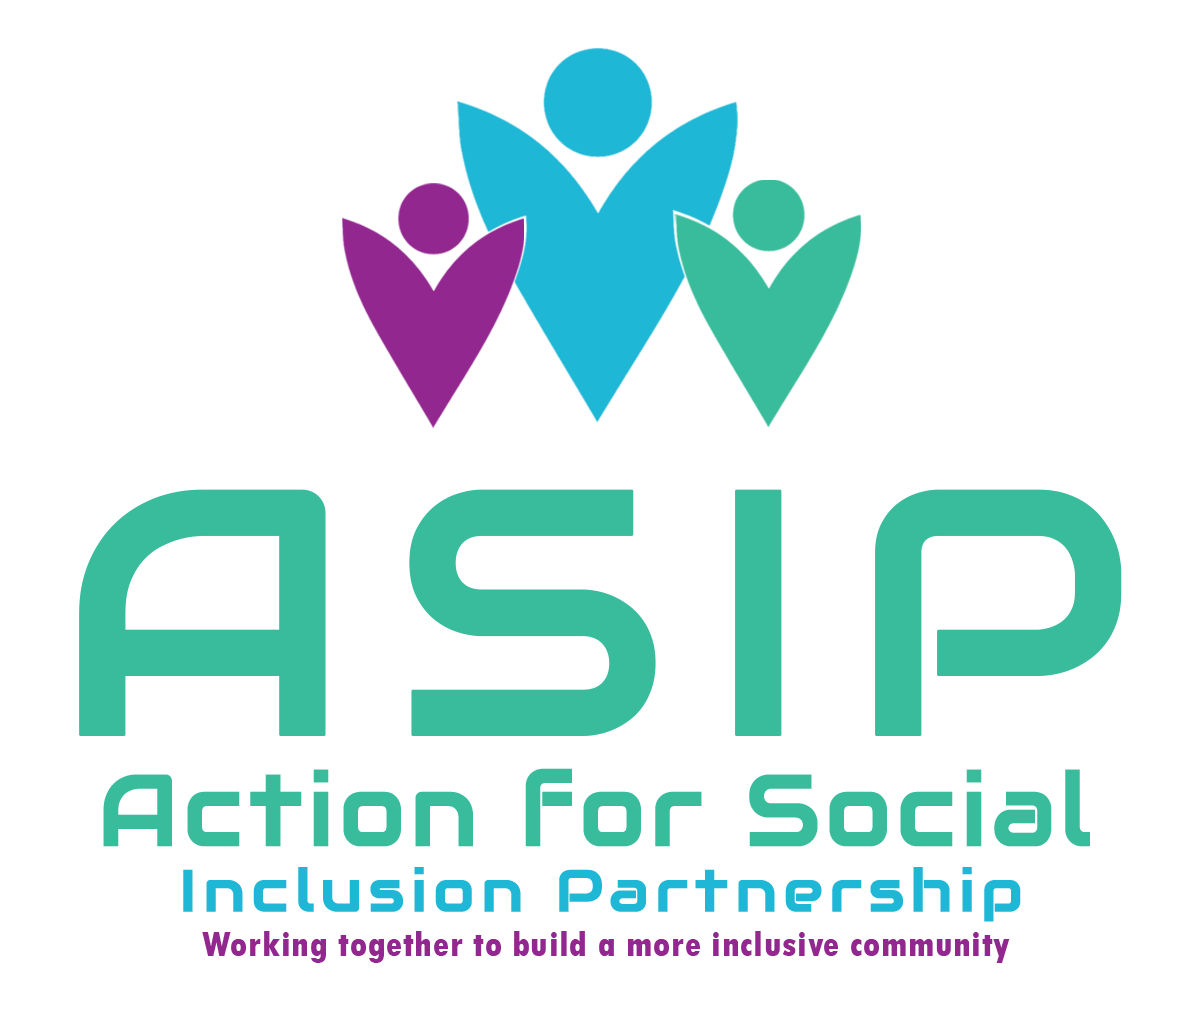 Action for Social Inclusion Partnership